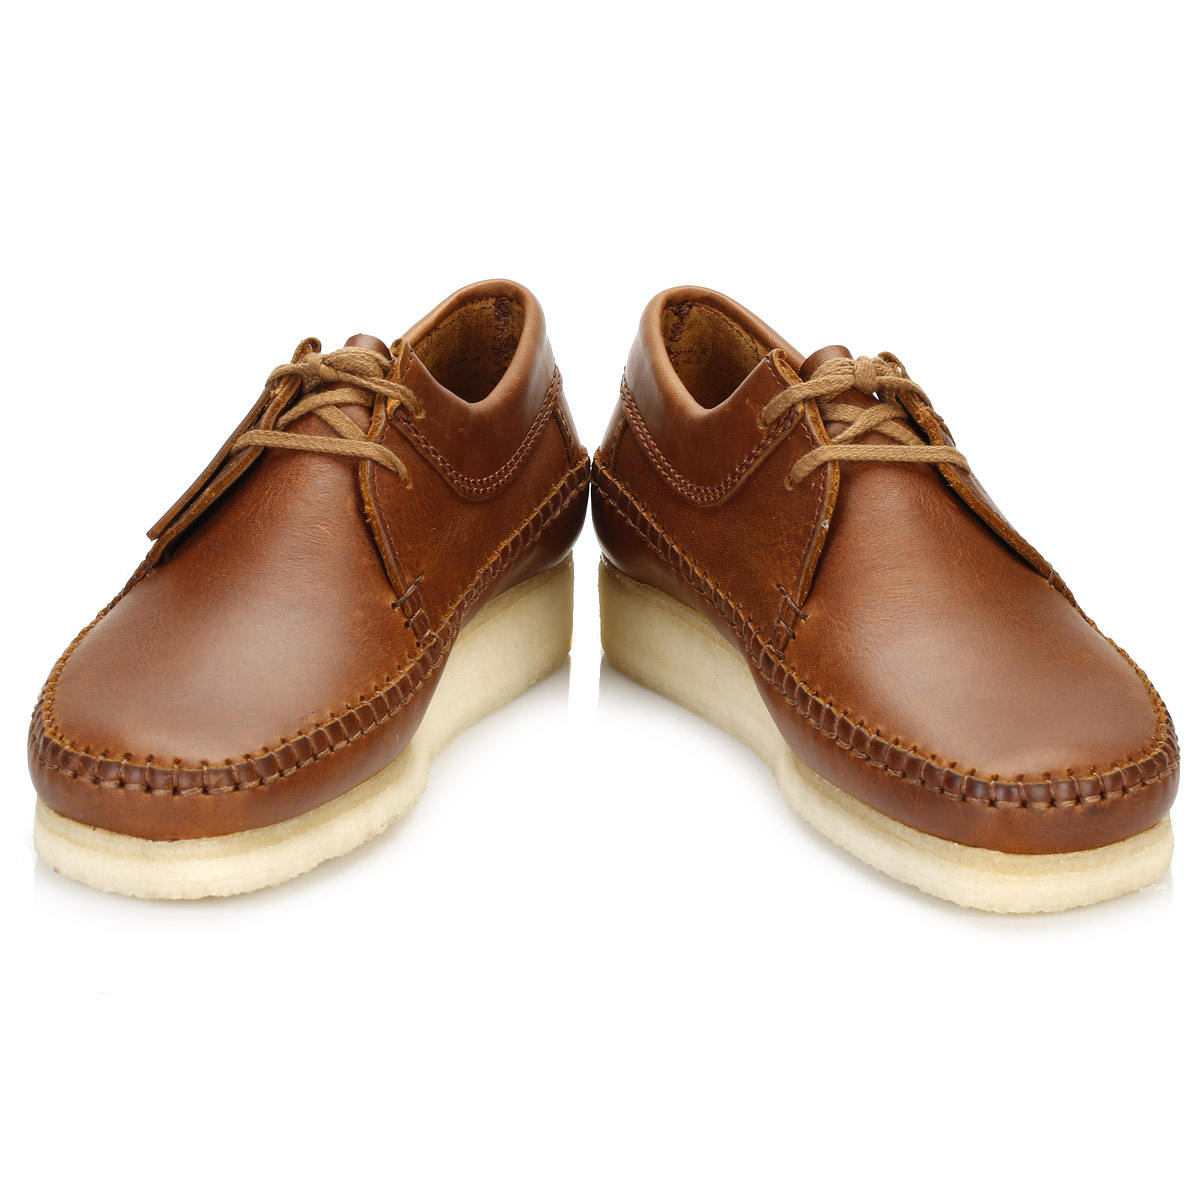 Shoes Similar To Clarks